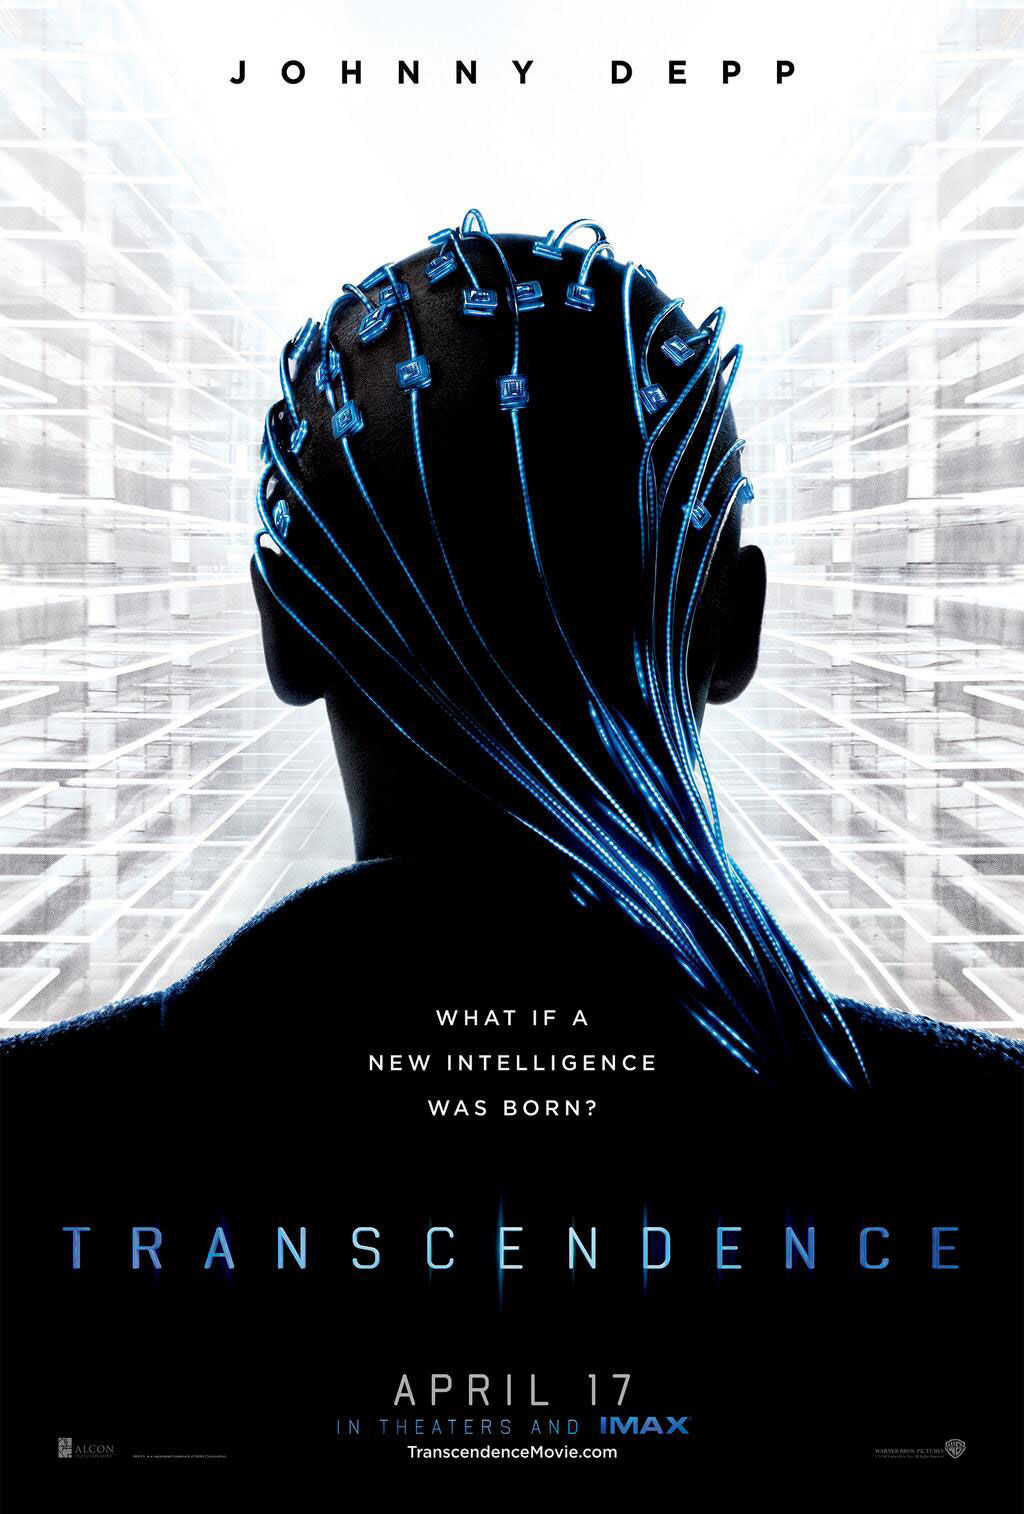 transcendence johnny depp poster Transcendence Poster with Johnny Depp